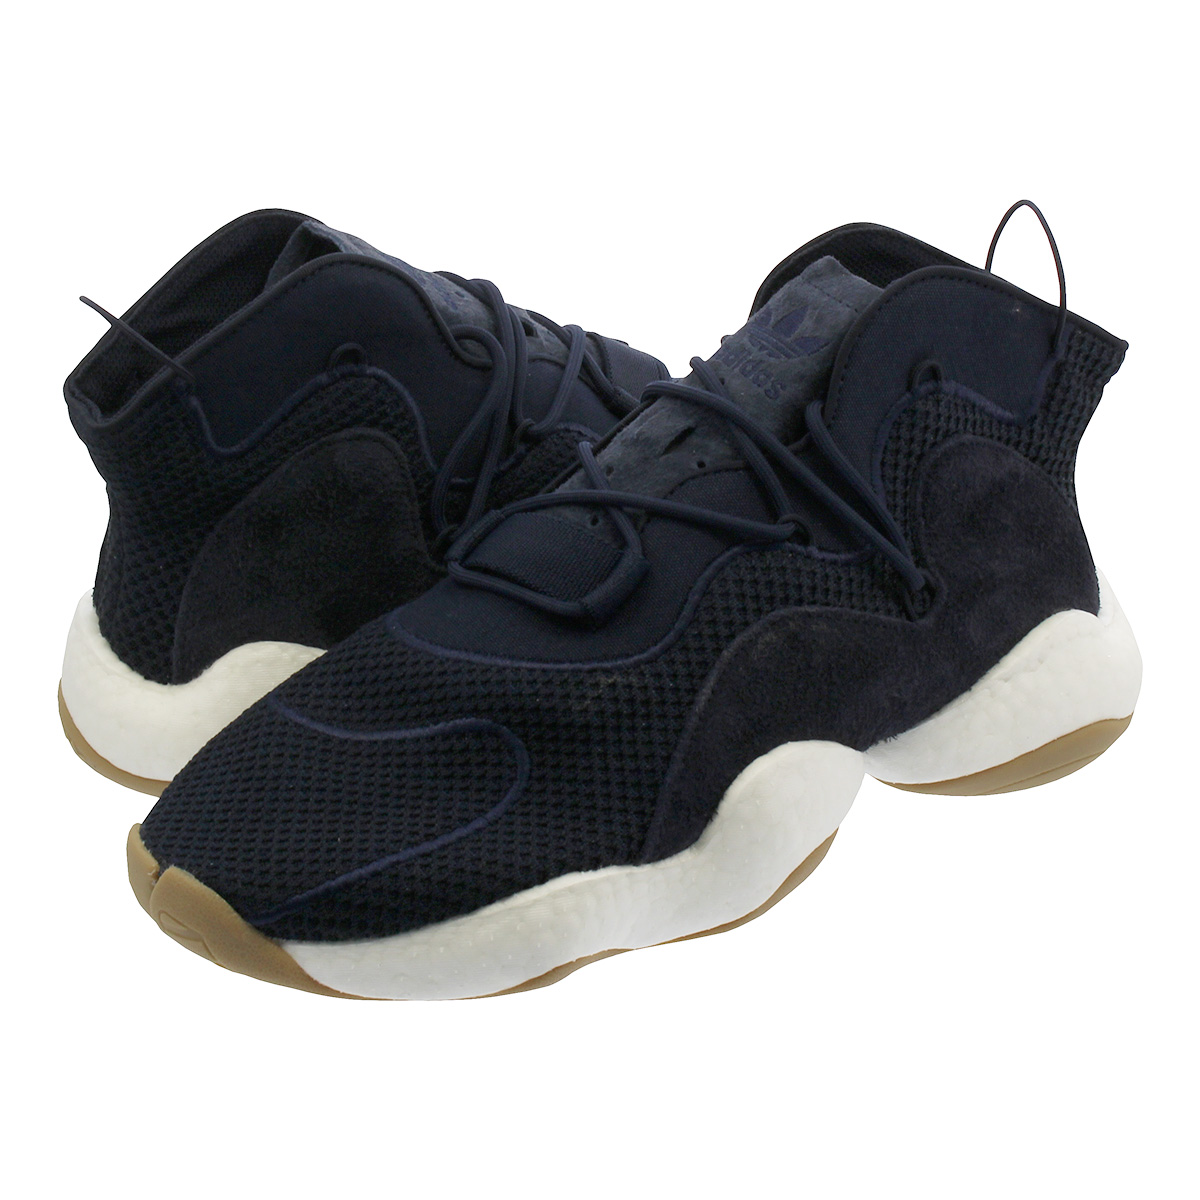 e6b7993e Categories. « All Categories · Shoes · Men's Shoes · Sneakers · adidas CRAZY  BYW LVL I Adidas crazy BYW LVL I LEGEND INK/COLLEGE NAVY/